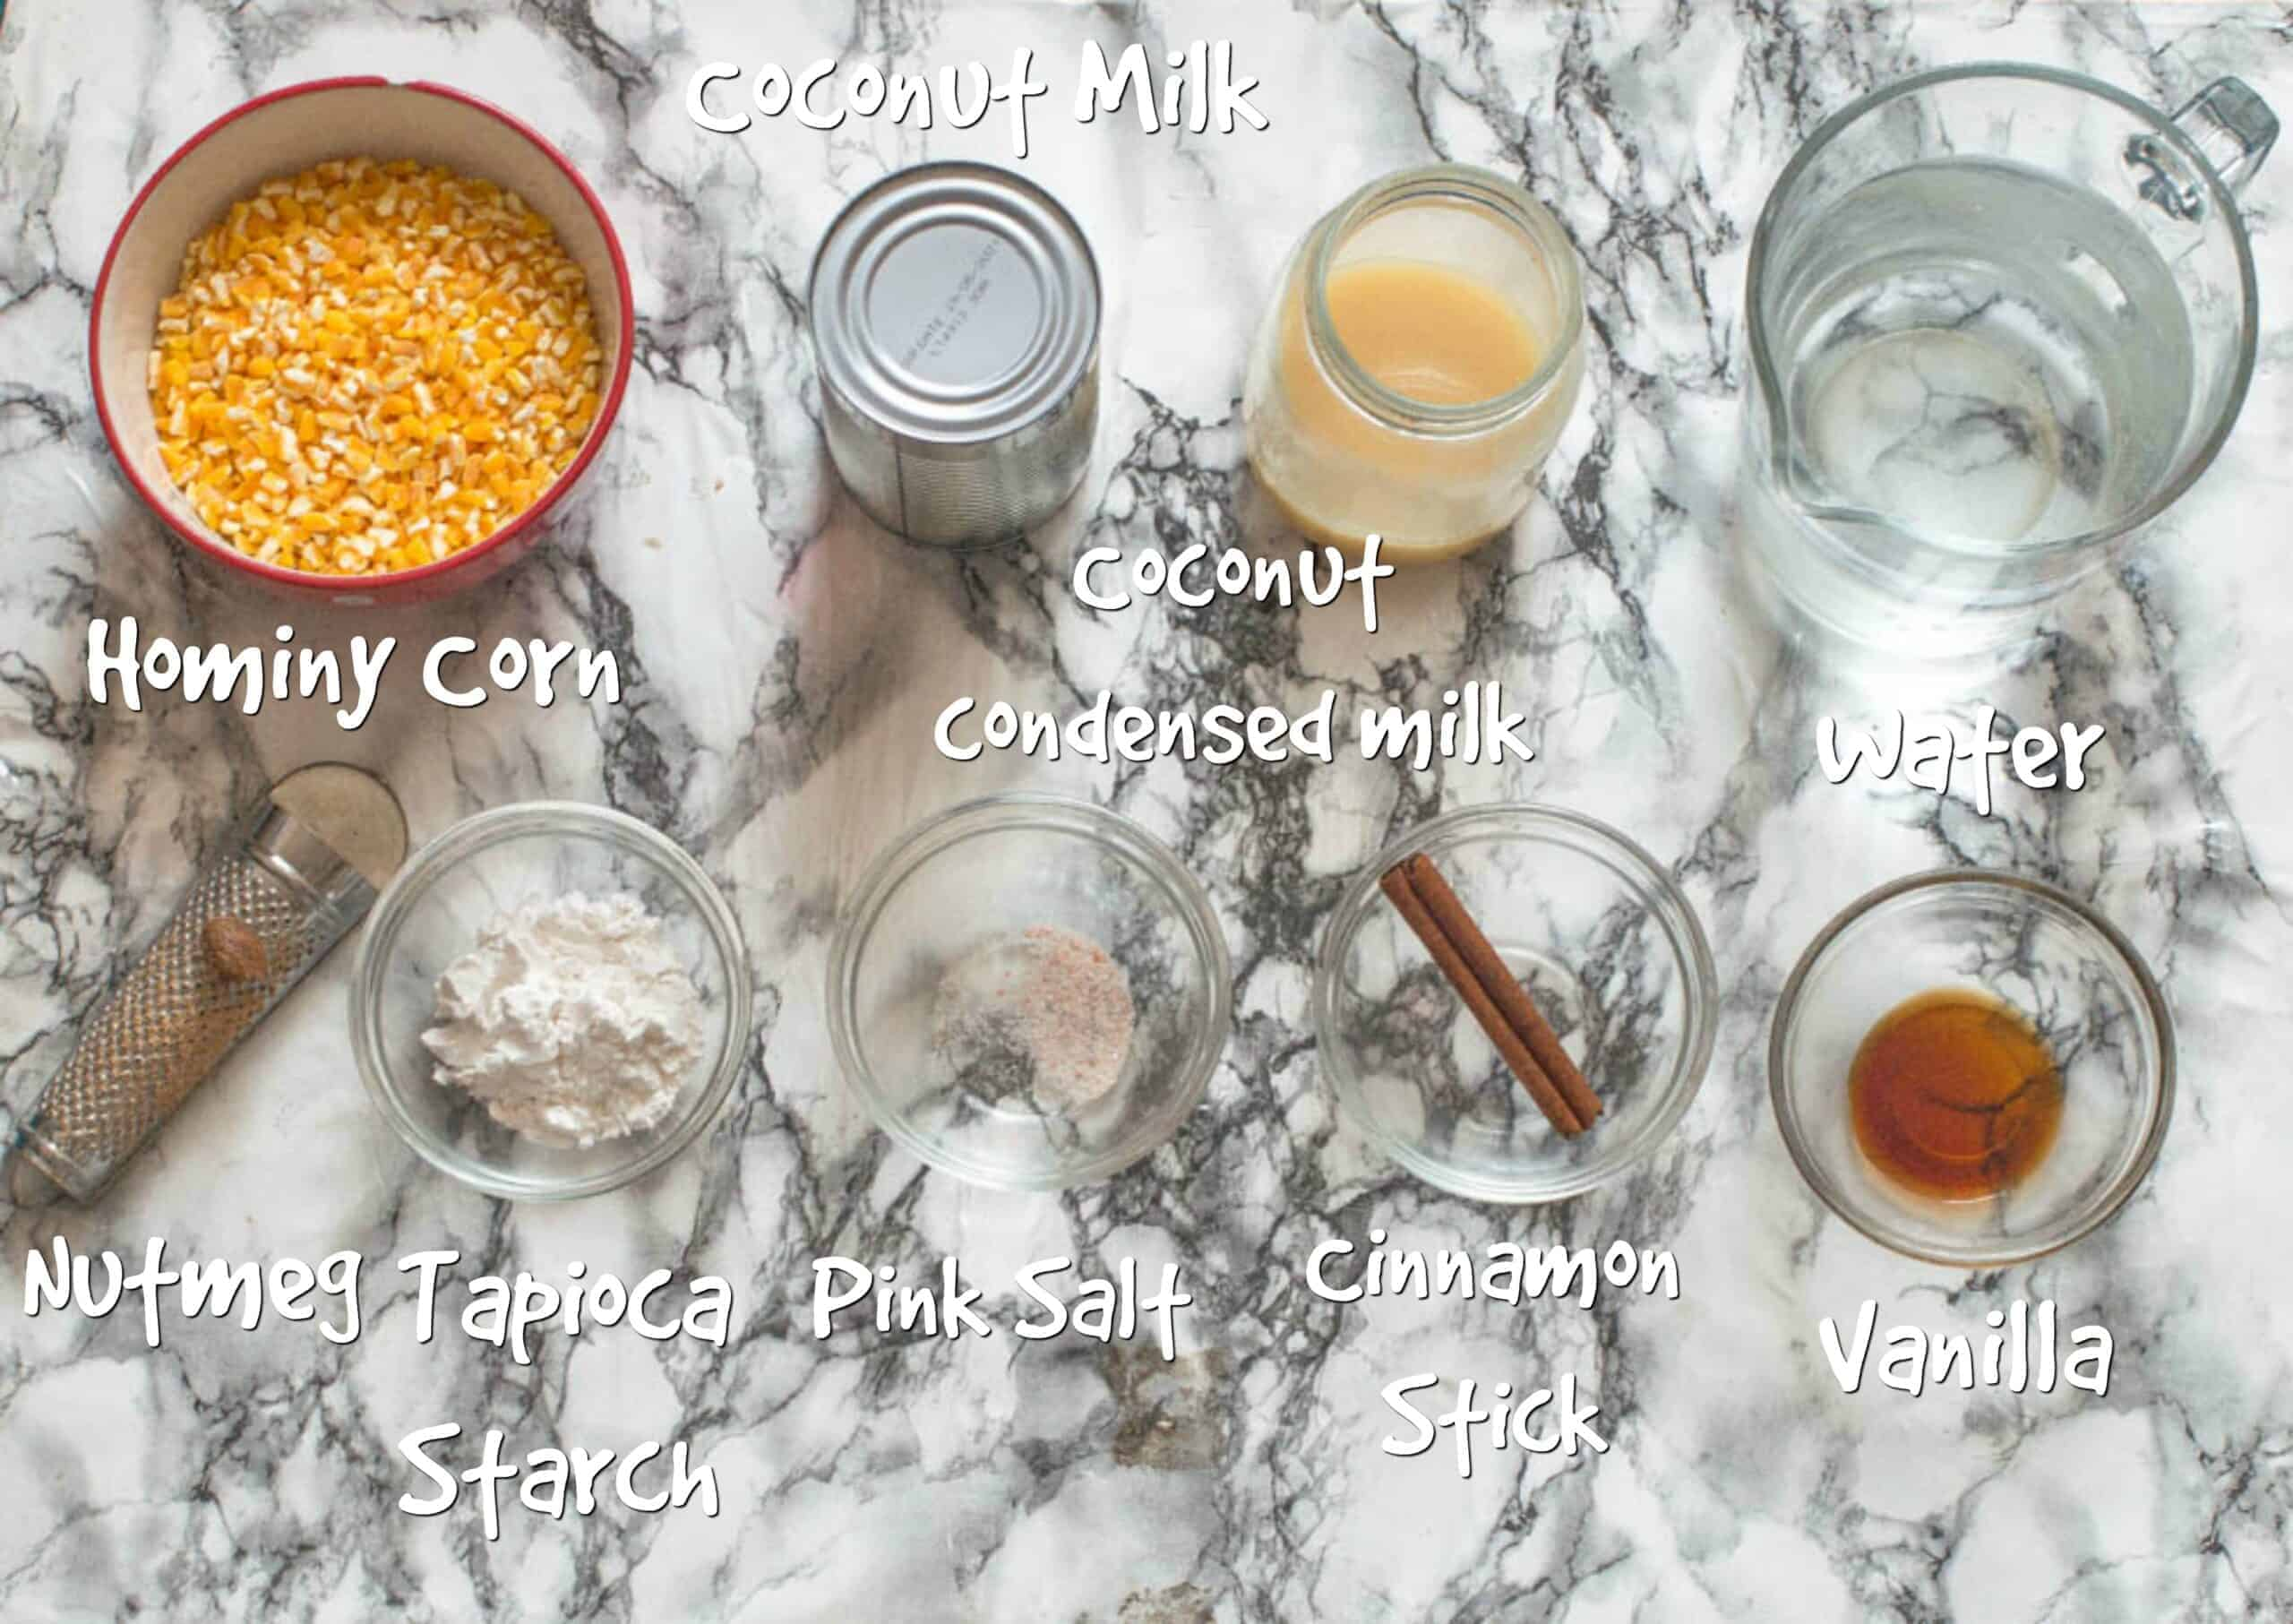 Ingredients for hominy corn porridge